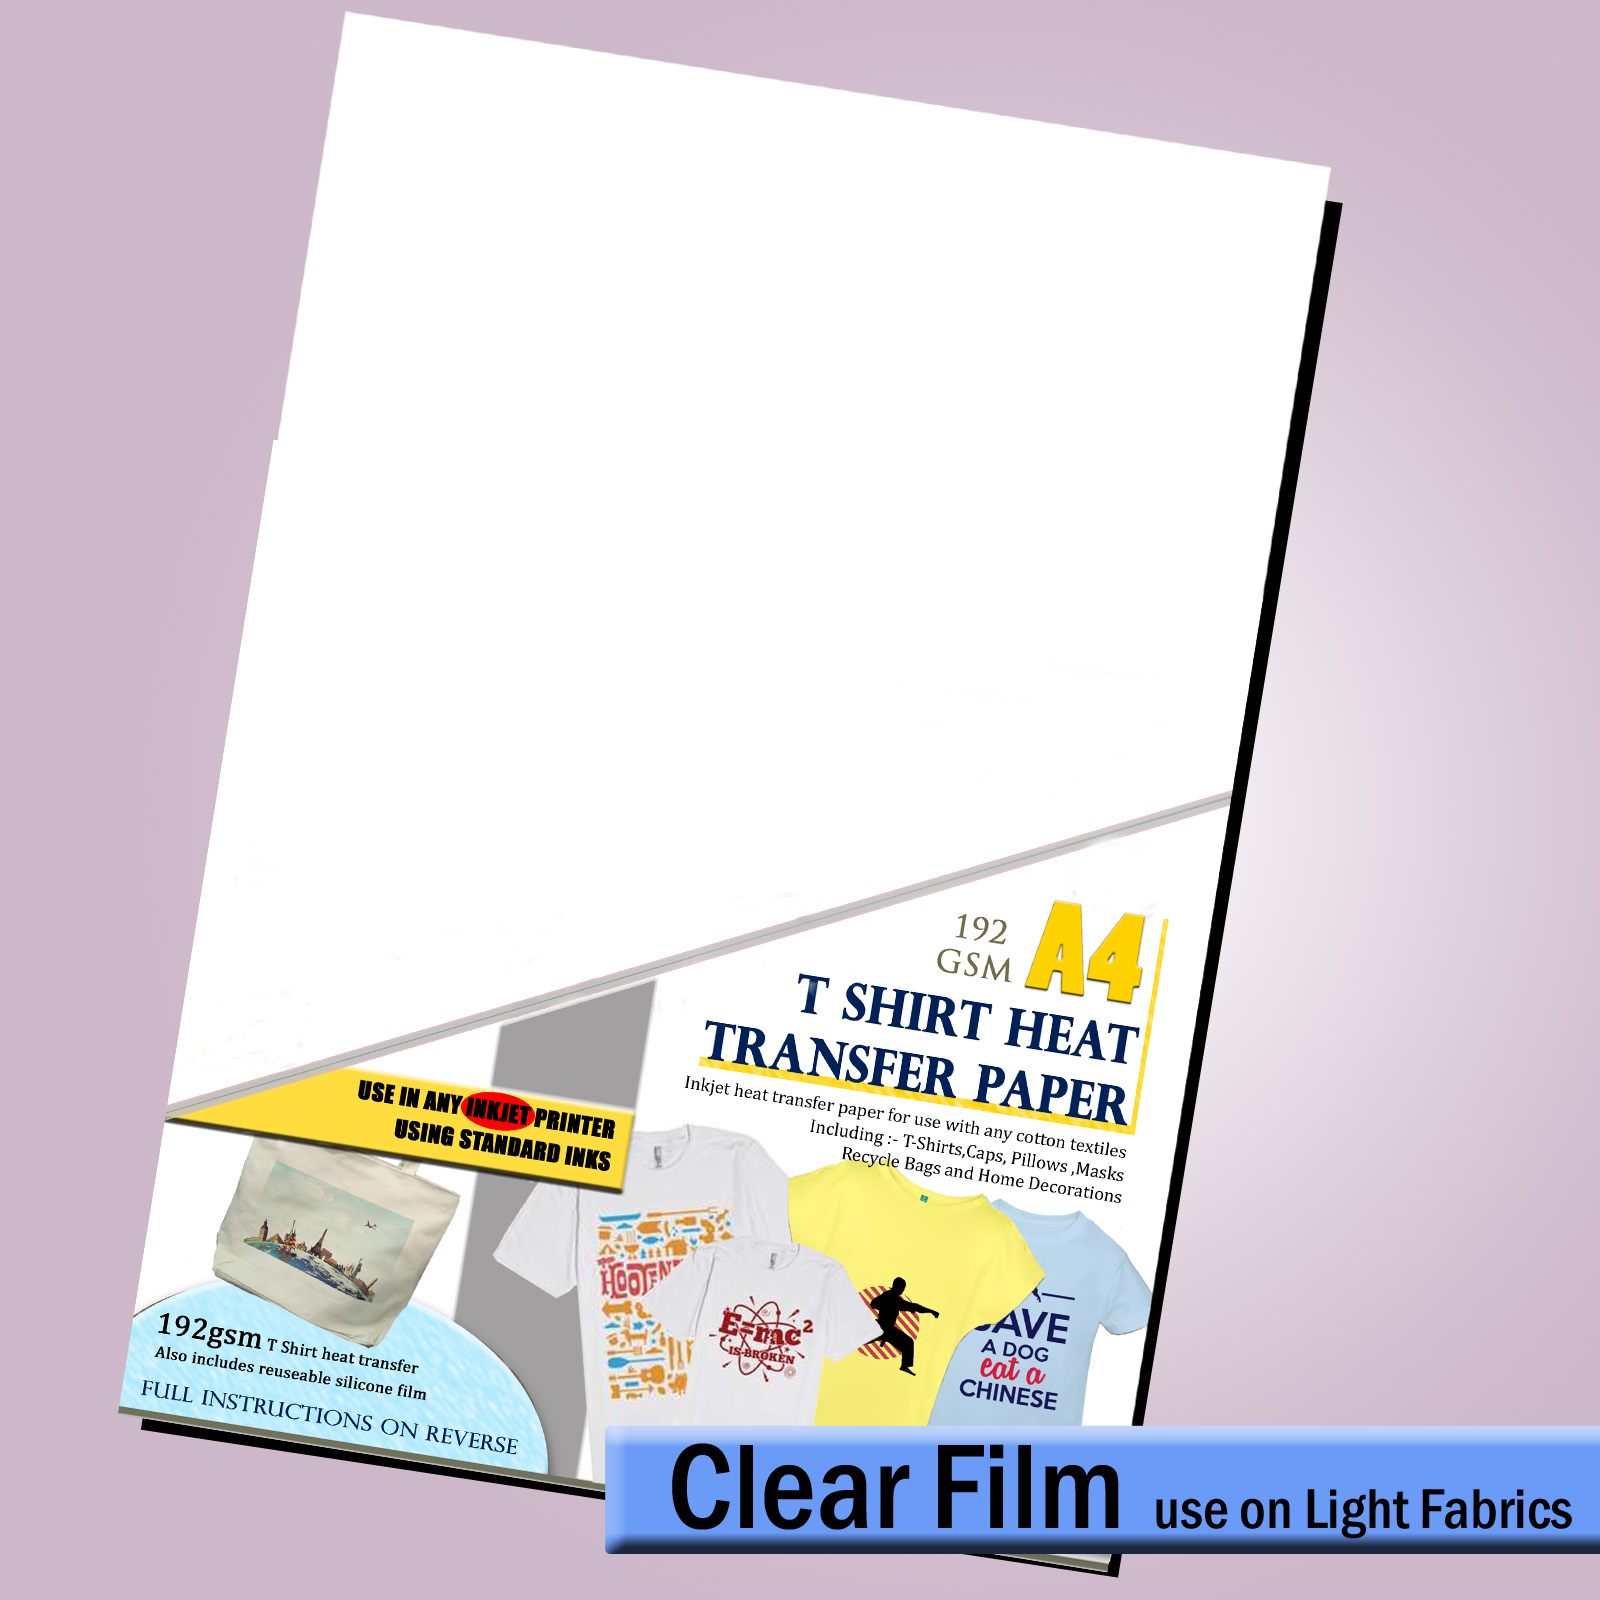 Details about Transfer Paper - T Shirt Decal (For LIGHT Fabric ) for use on  INKJET printers